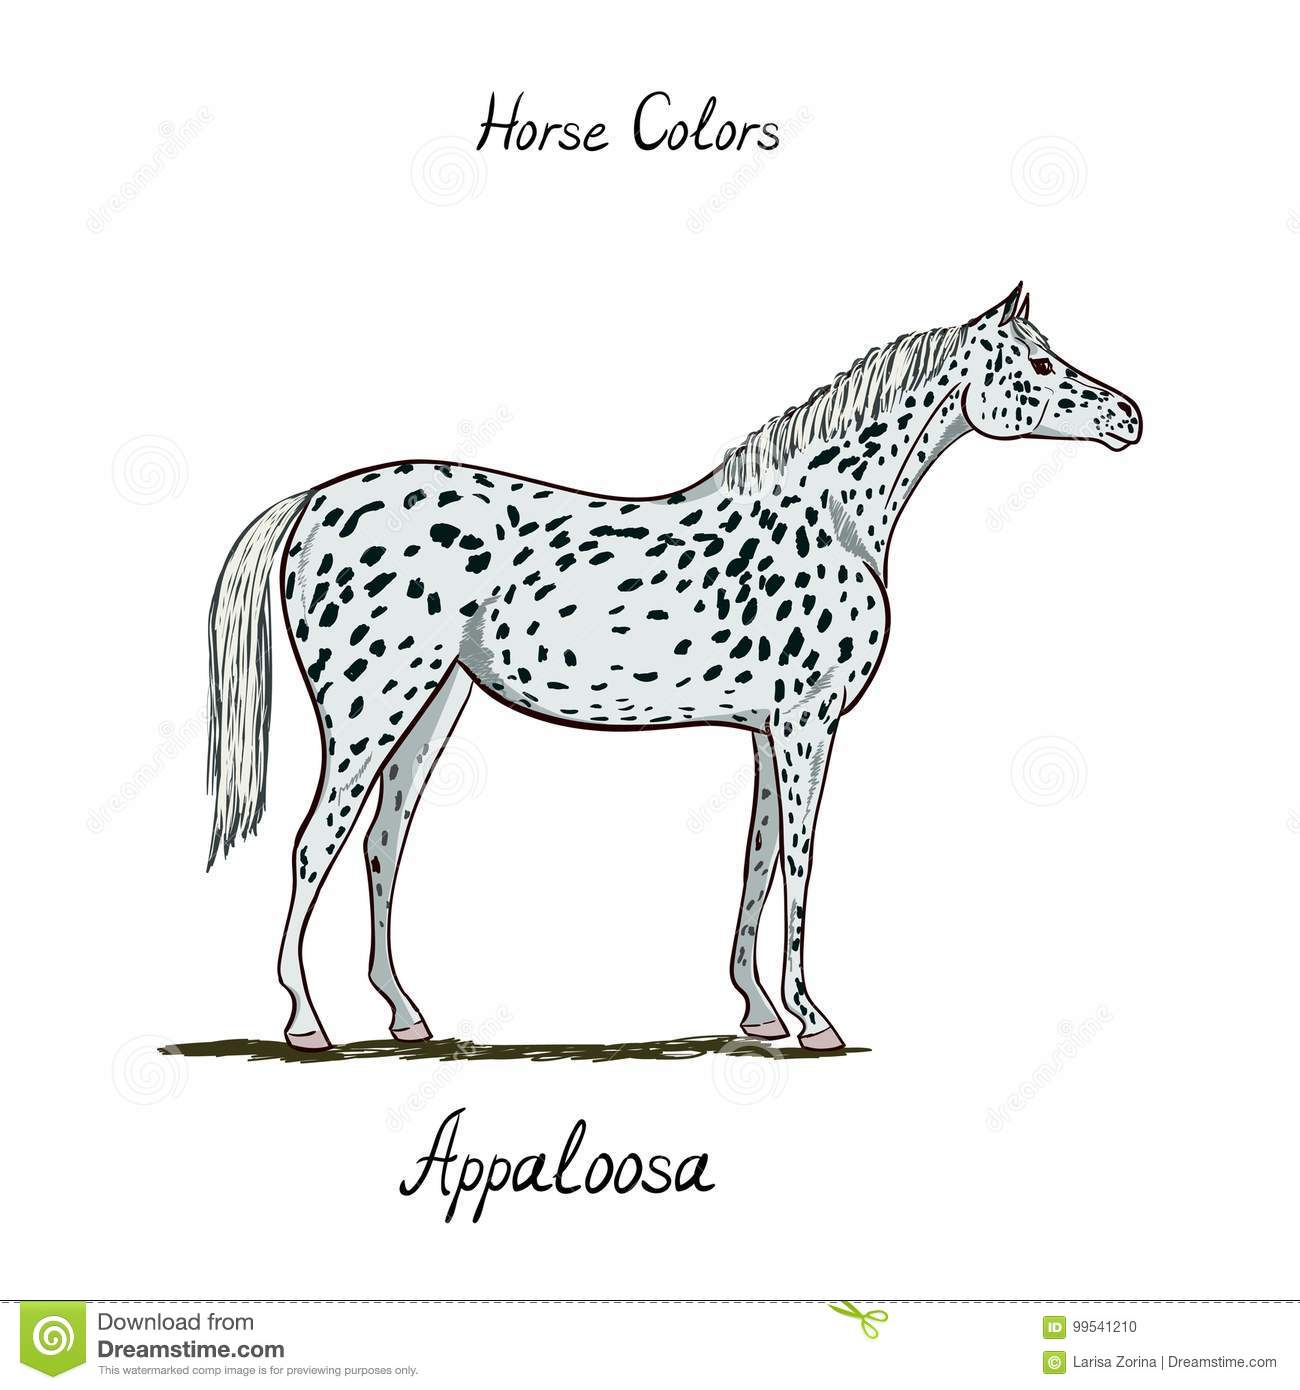 Horse color chart on white equine appaloosa coat color with text horse color chart on white equine appaloosa coat color with text nvjuhfo Gallery